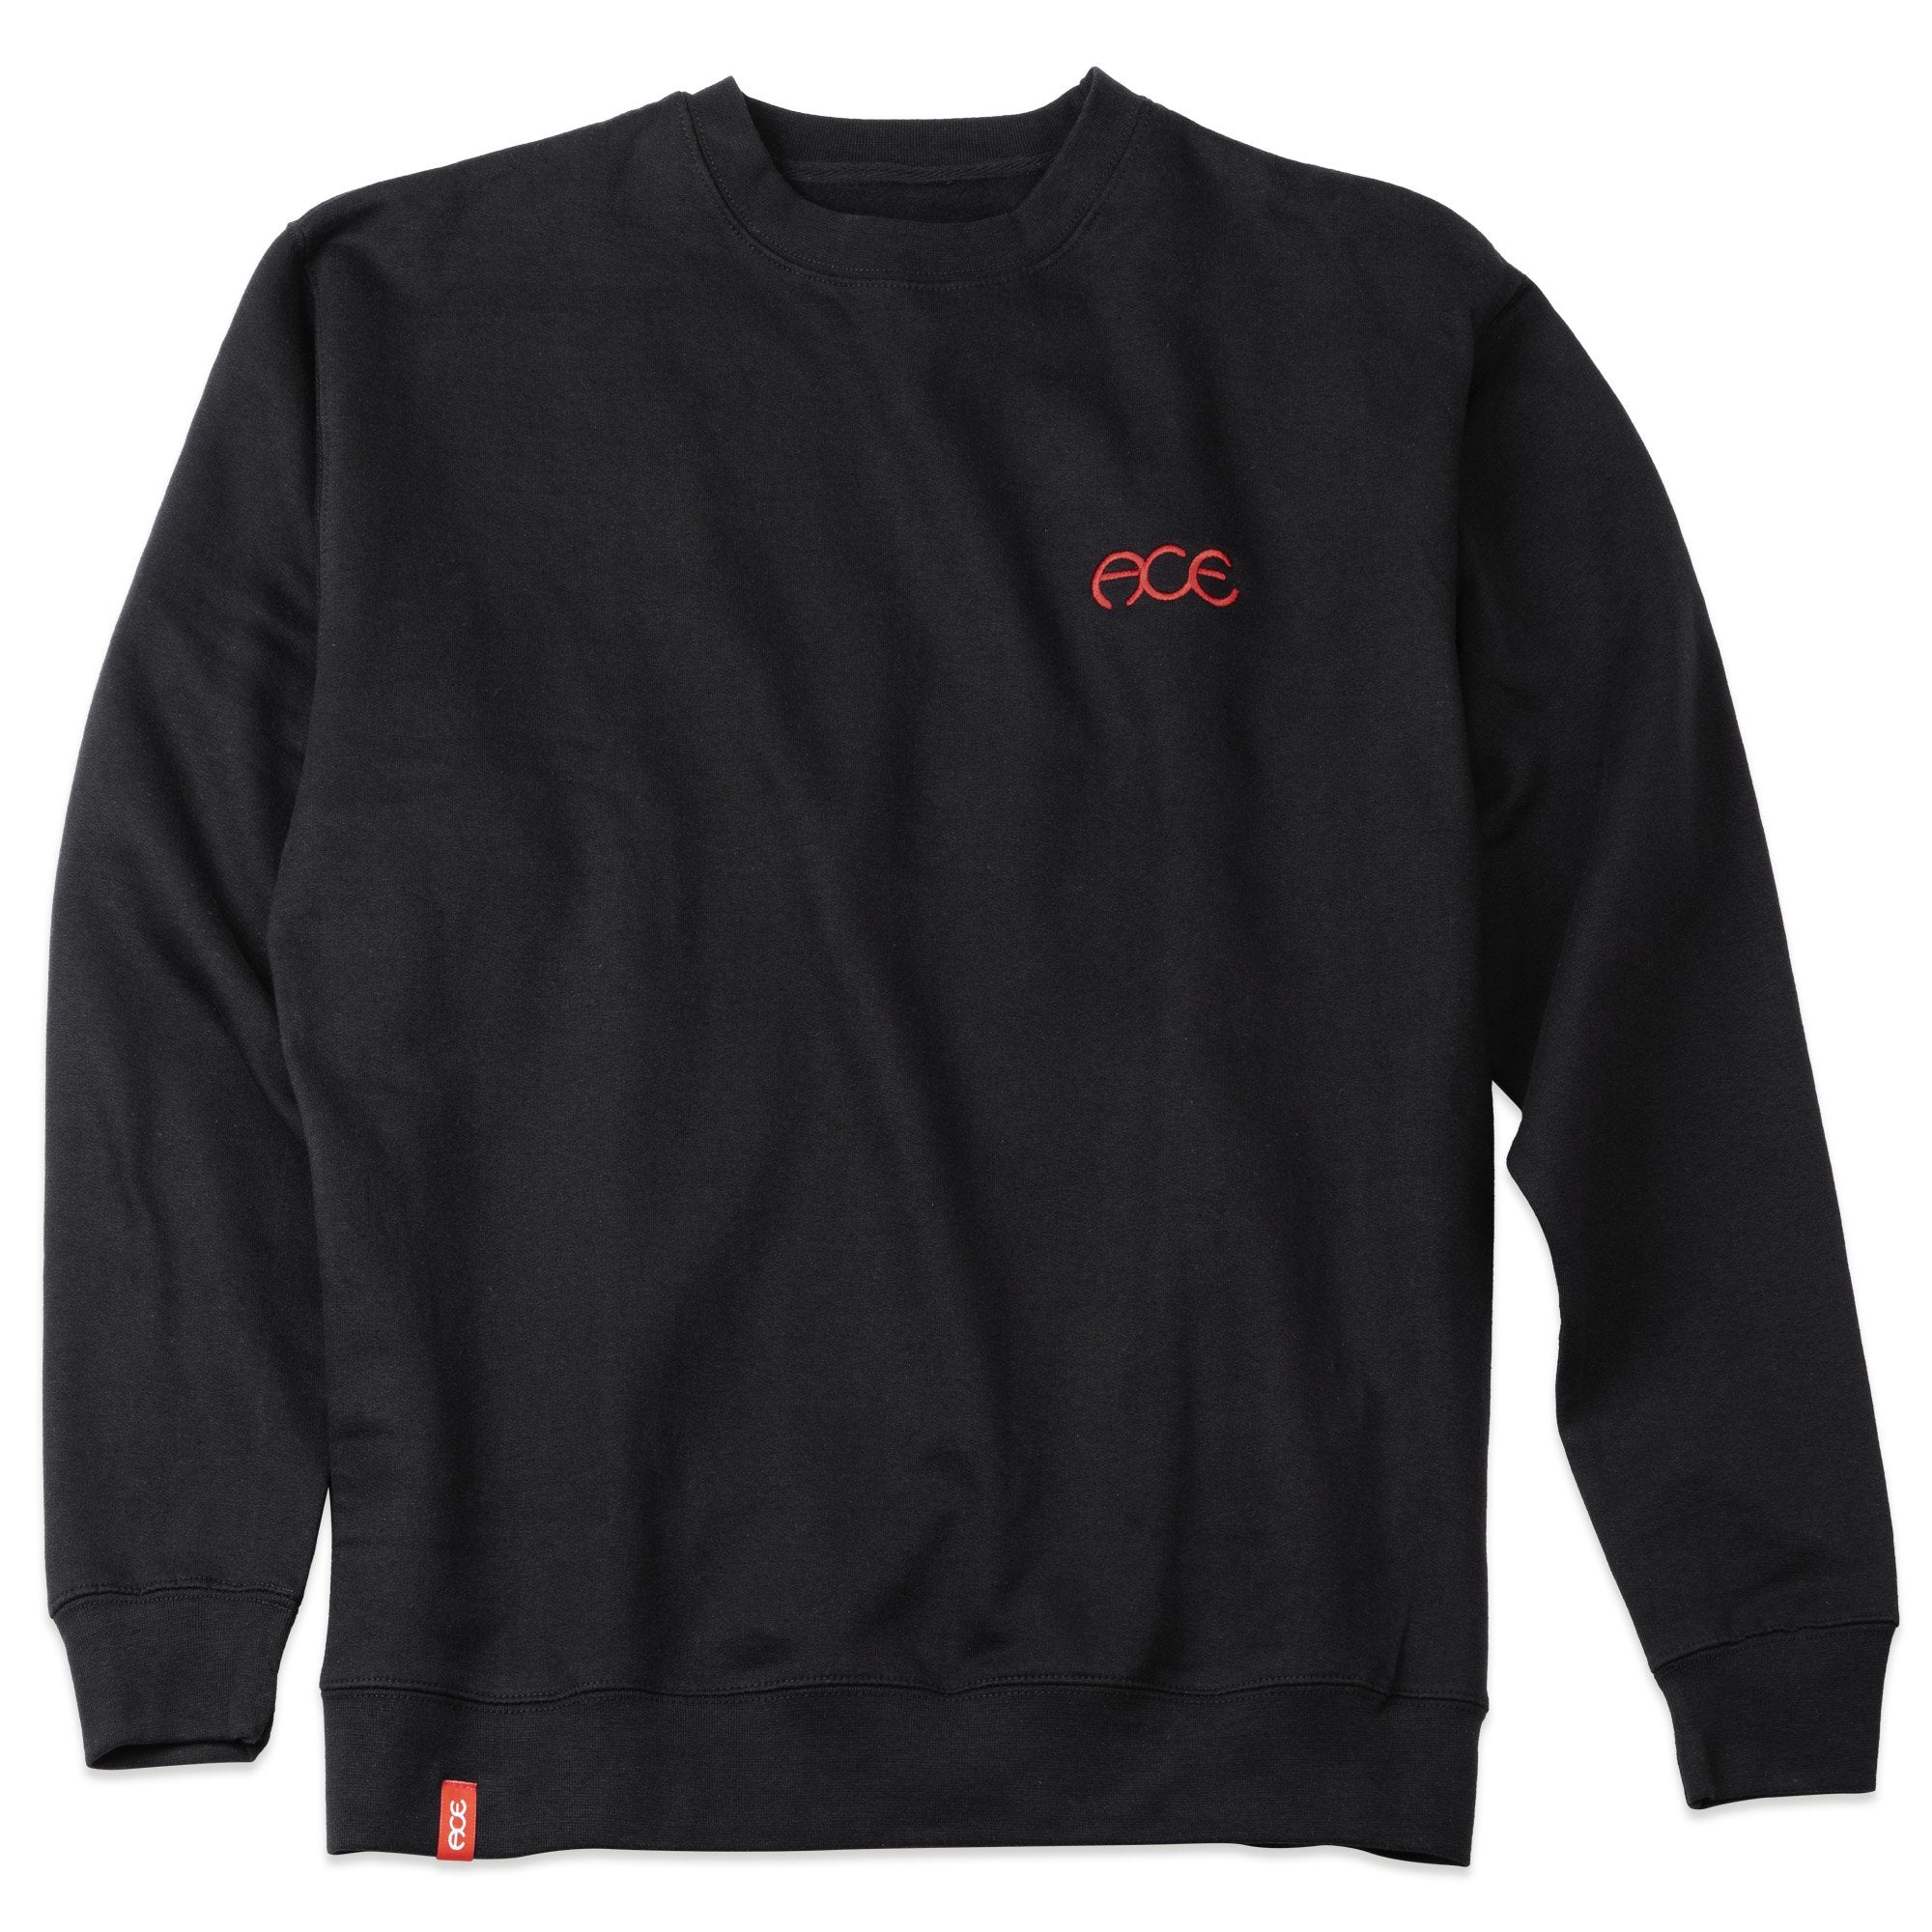 Ace Trucks Hutch Crewneck Sweatshirt Black